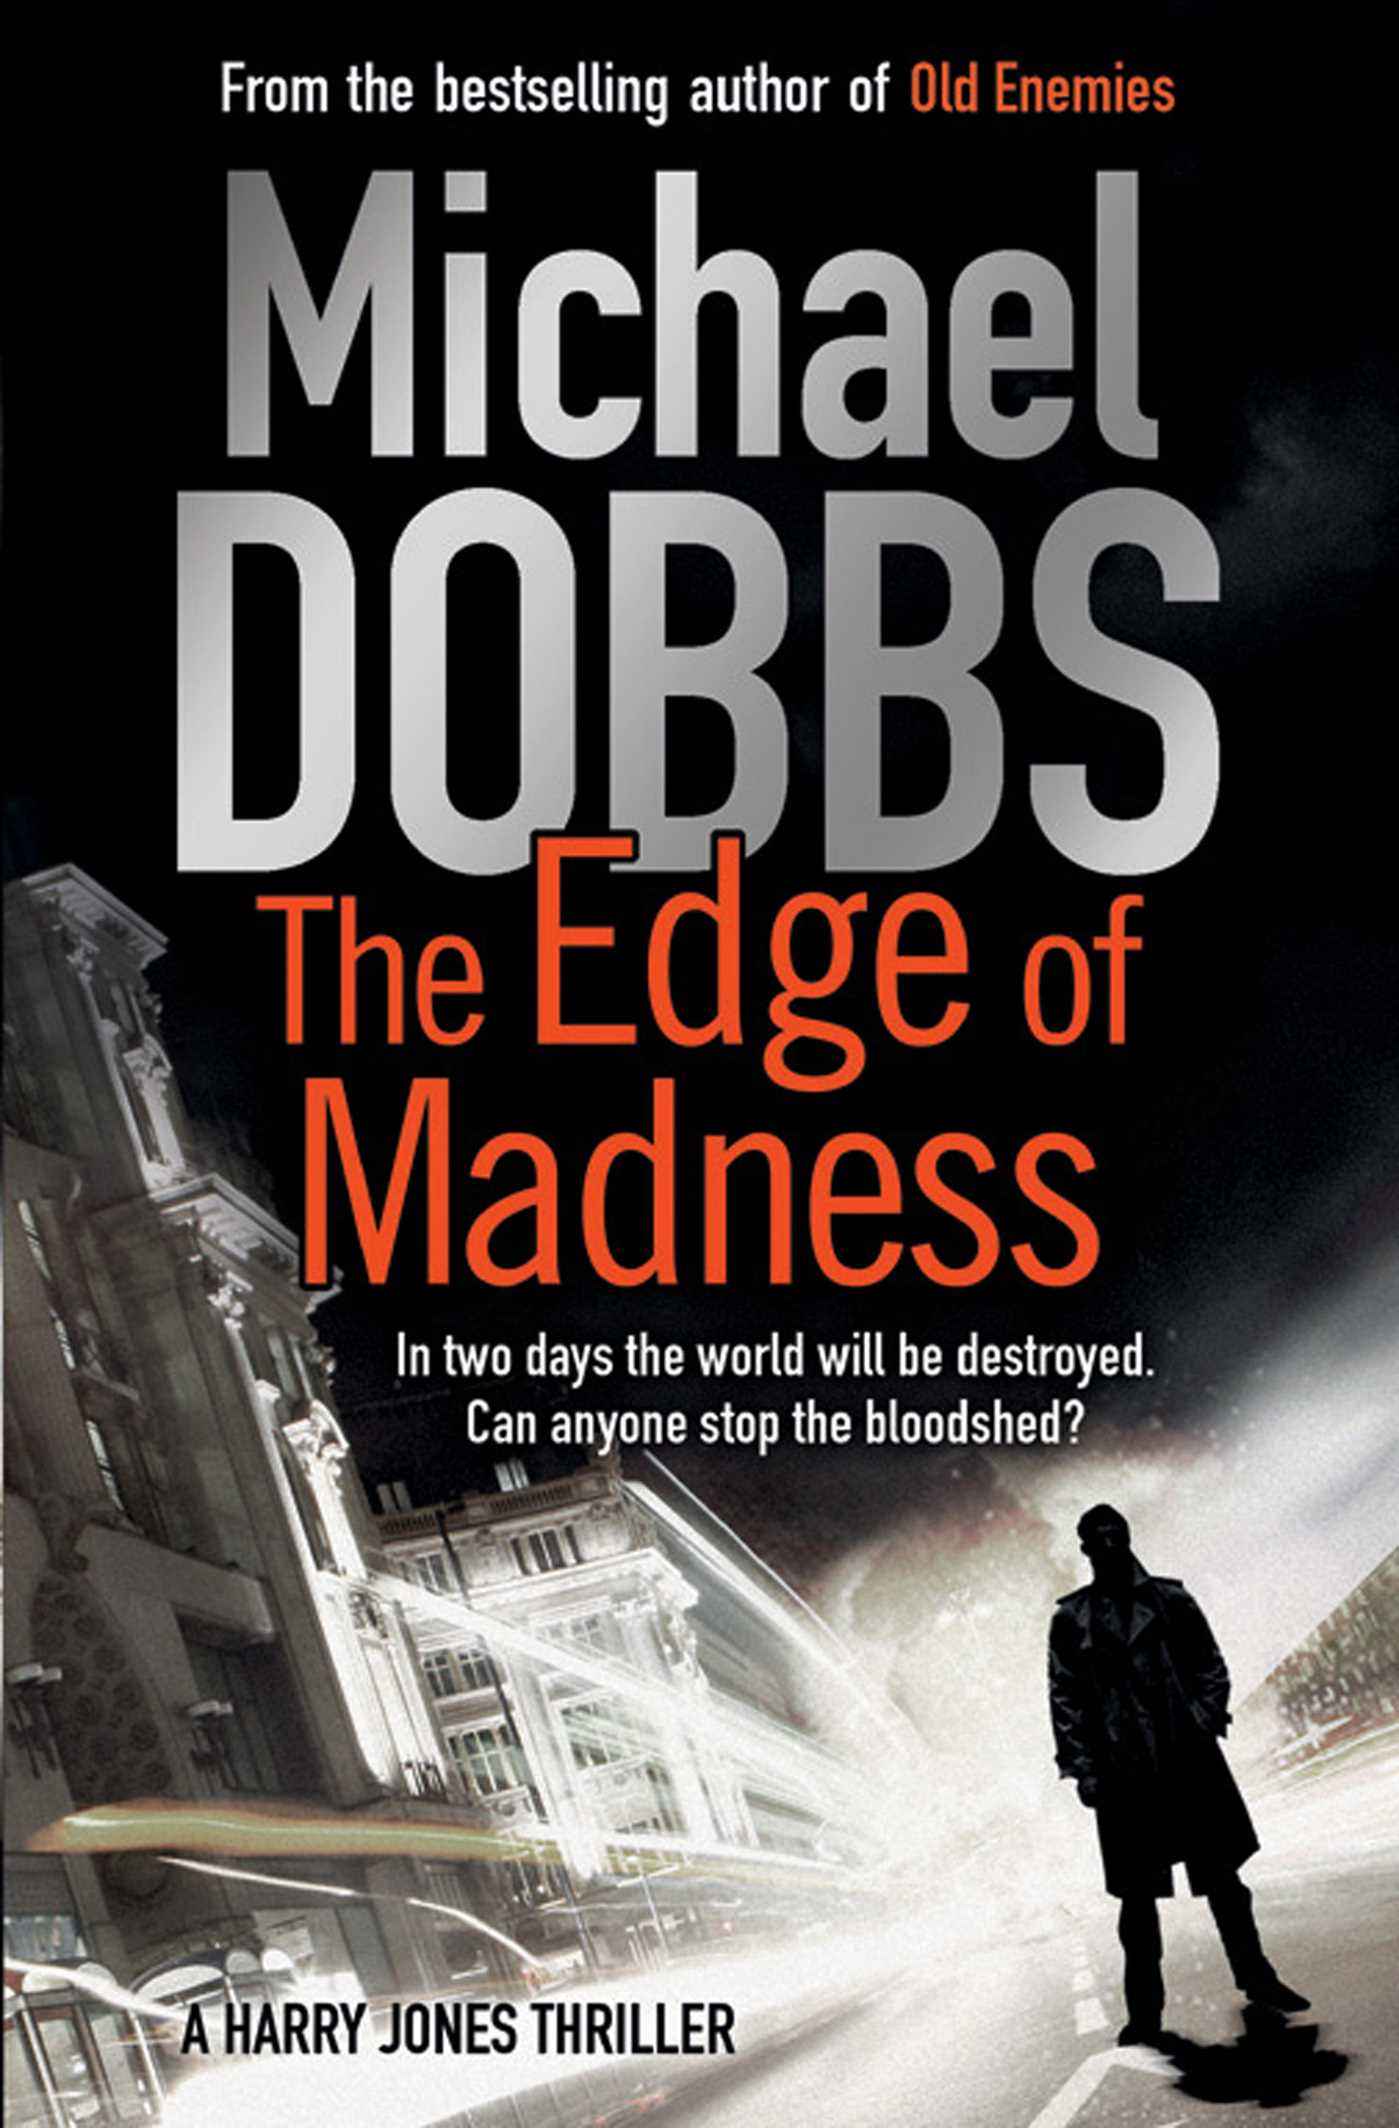 The edge of madness 9781847375605 hr